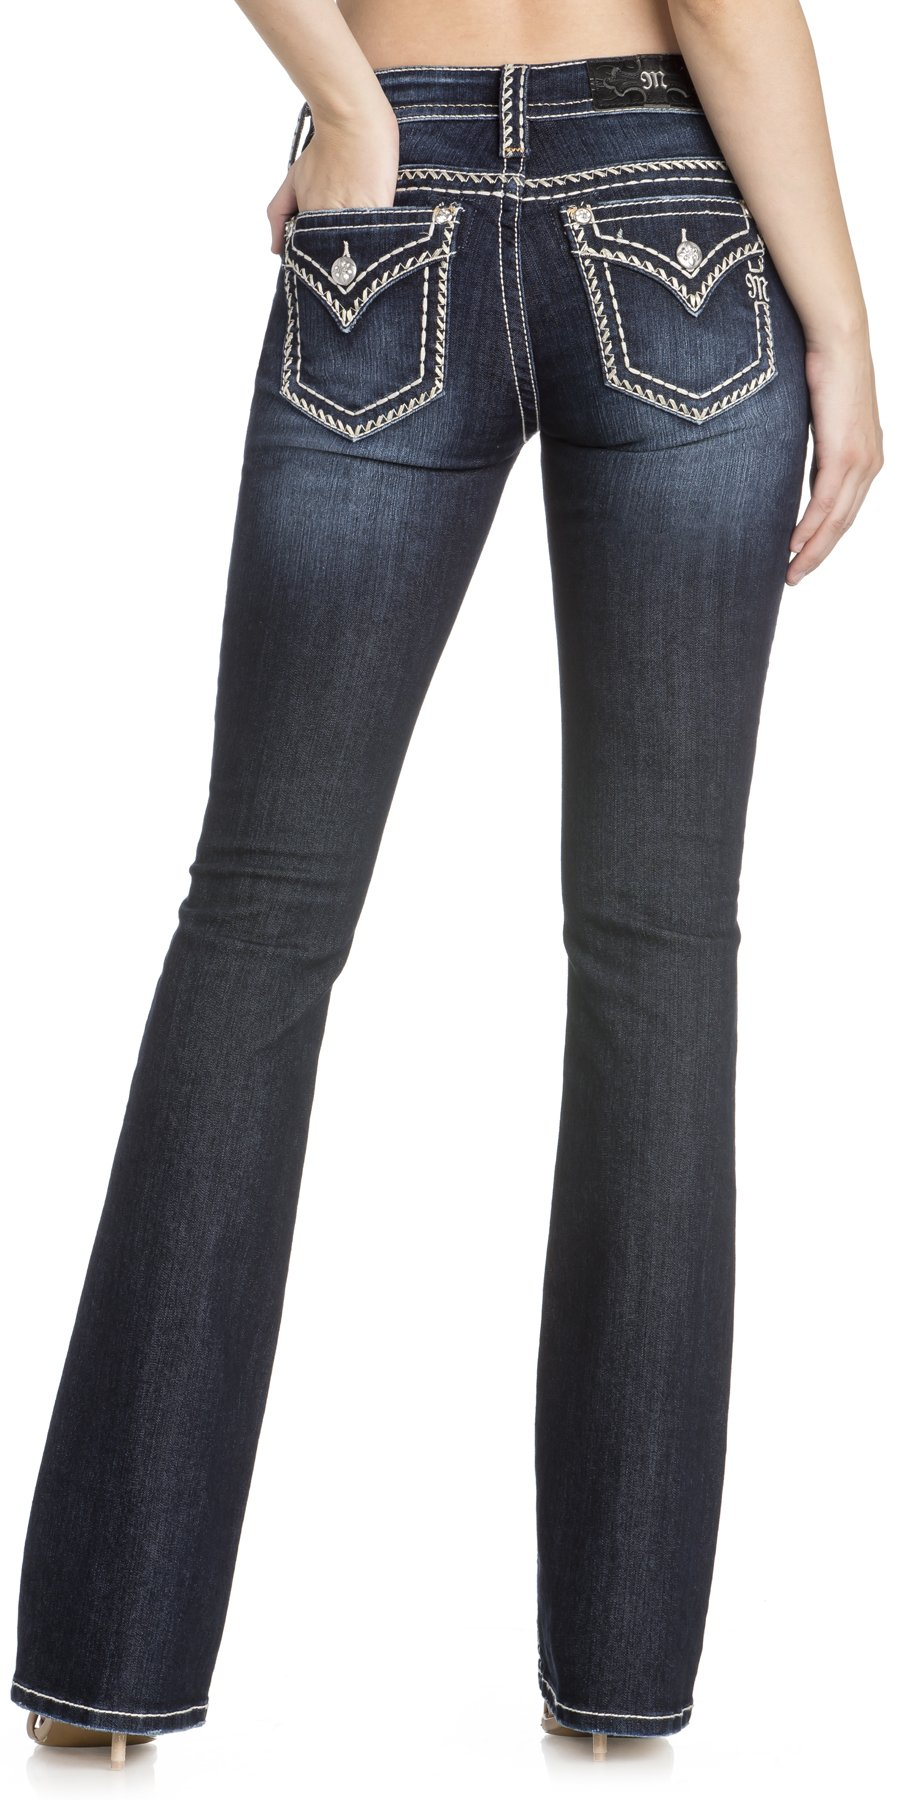 Miss Me Women's Chloe Thick Stitch Border Mid-Rise Boot Cut Jeans (Dark Blue, 25 34)